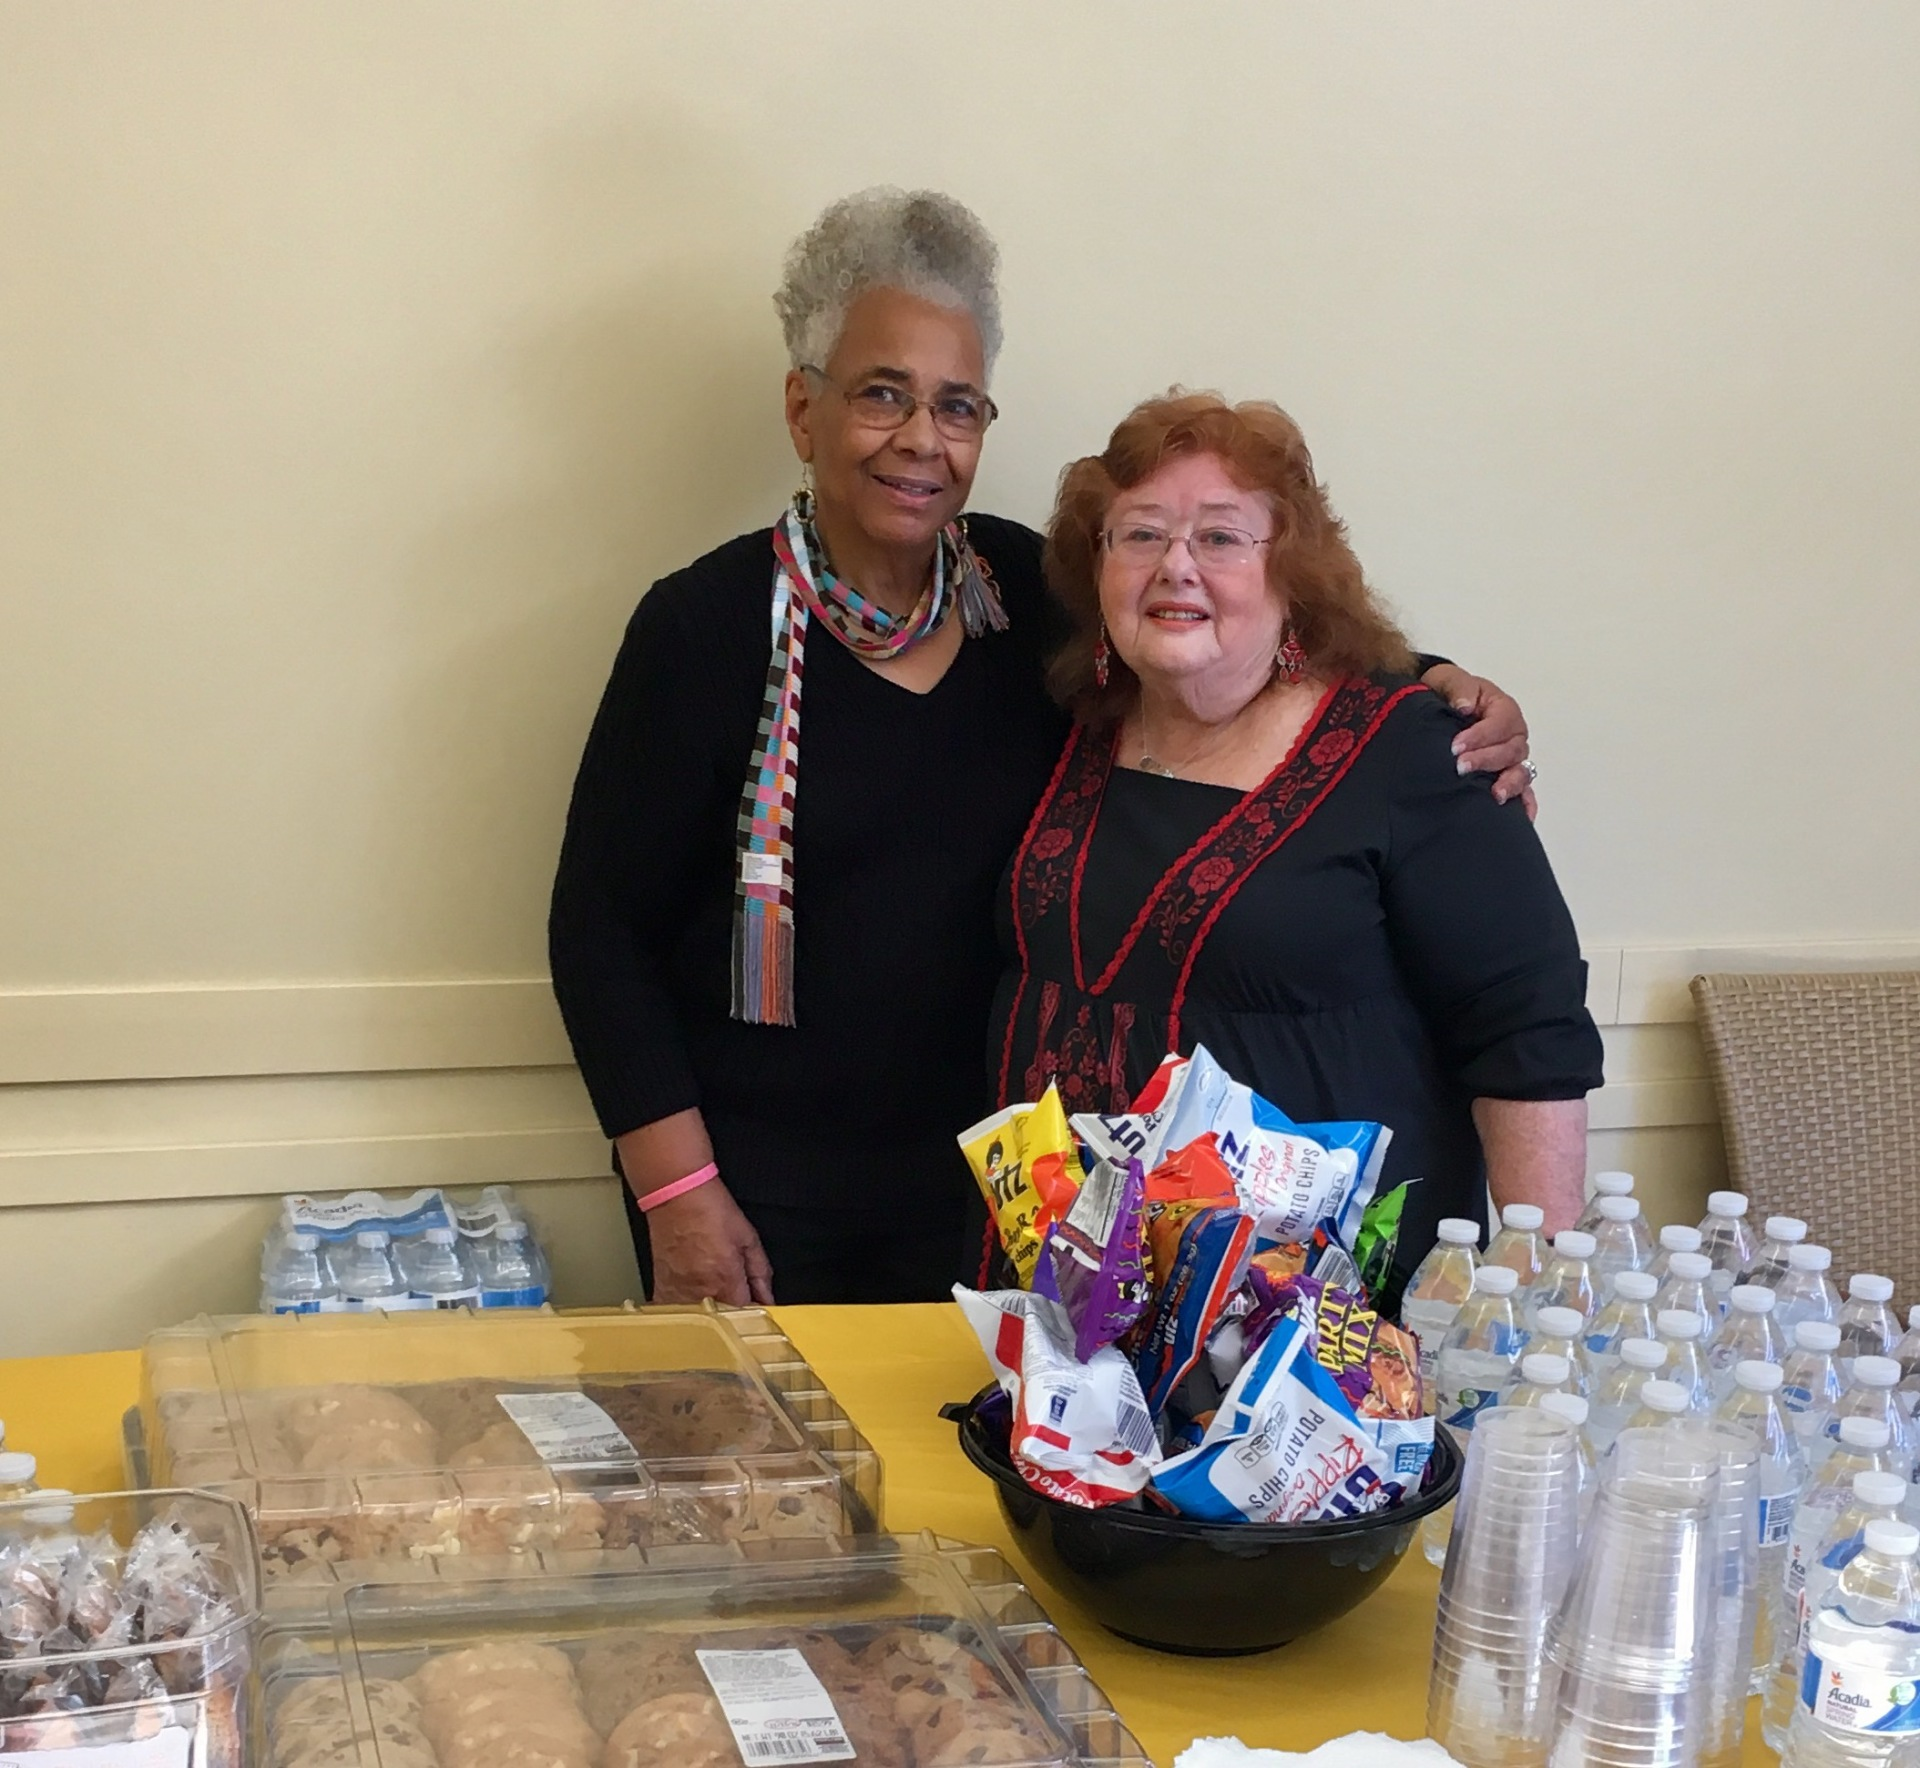 Vivian & Margarete Helping with the Refreshments